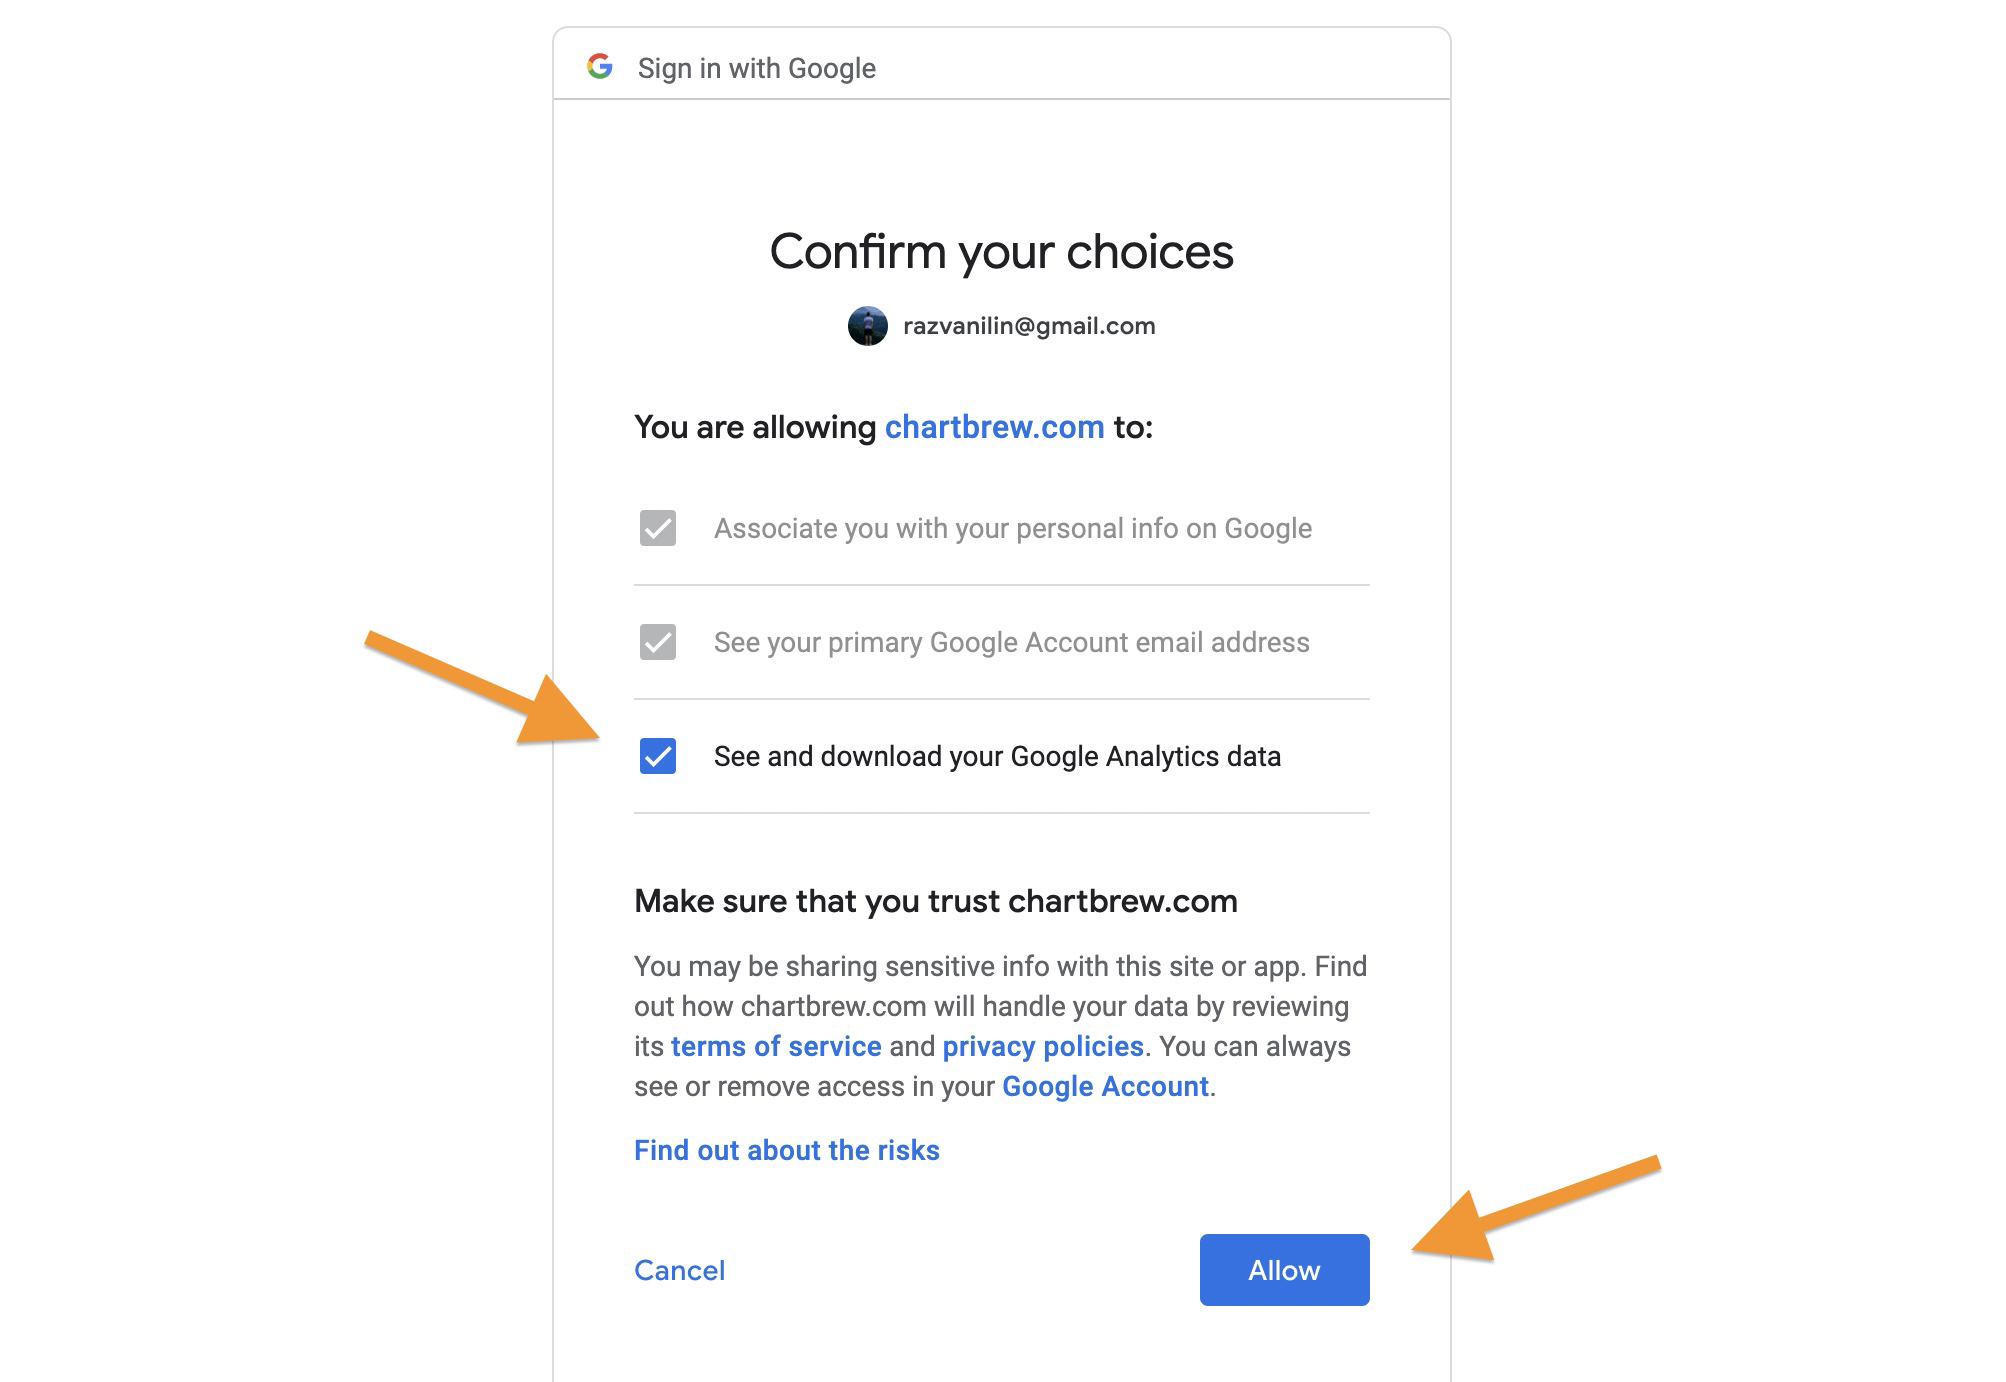 Authentication process for Google Analytics with Charbrew